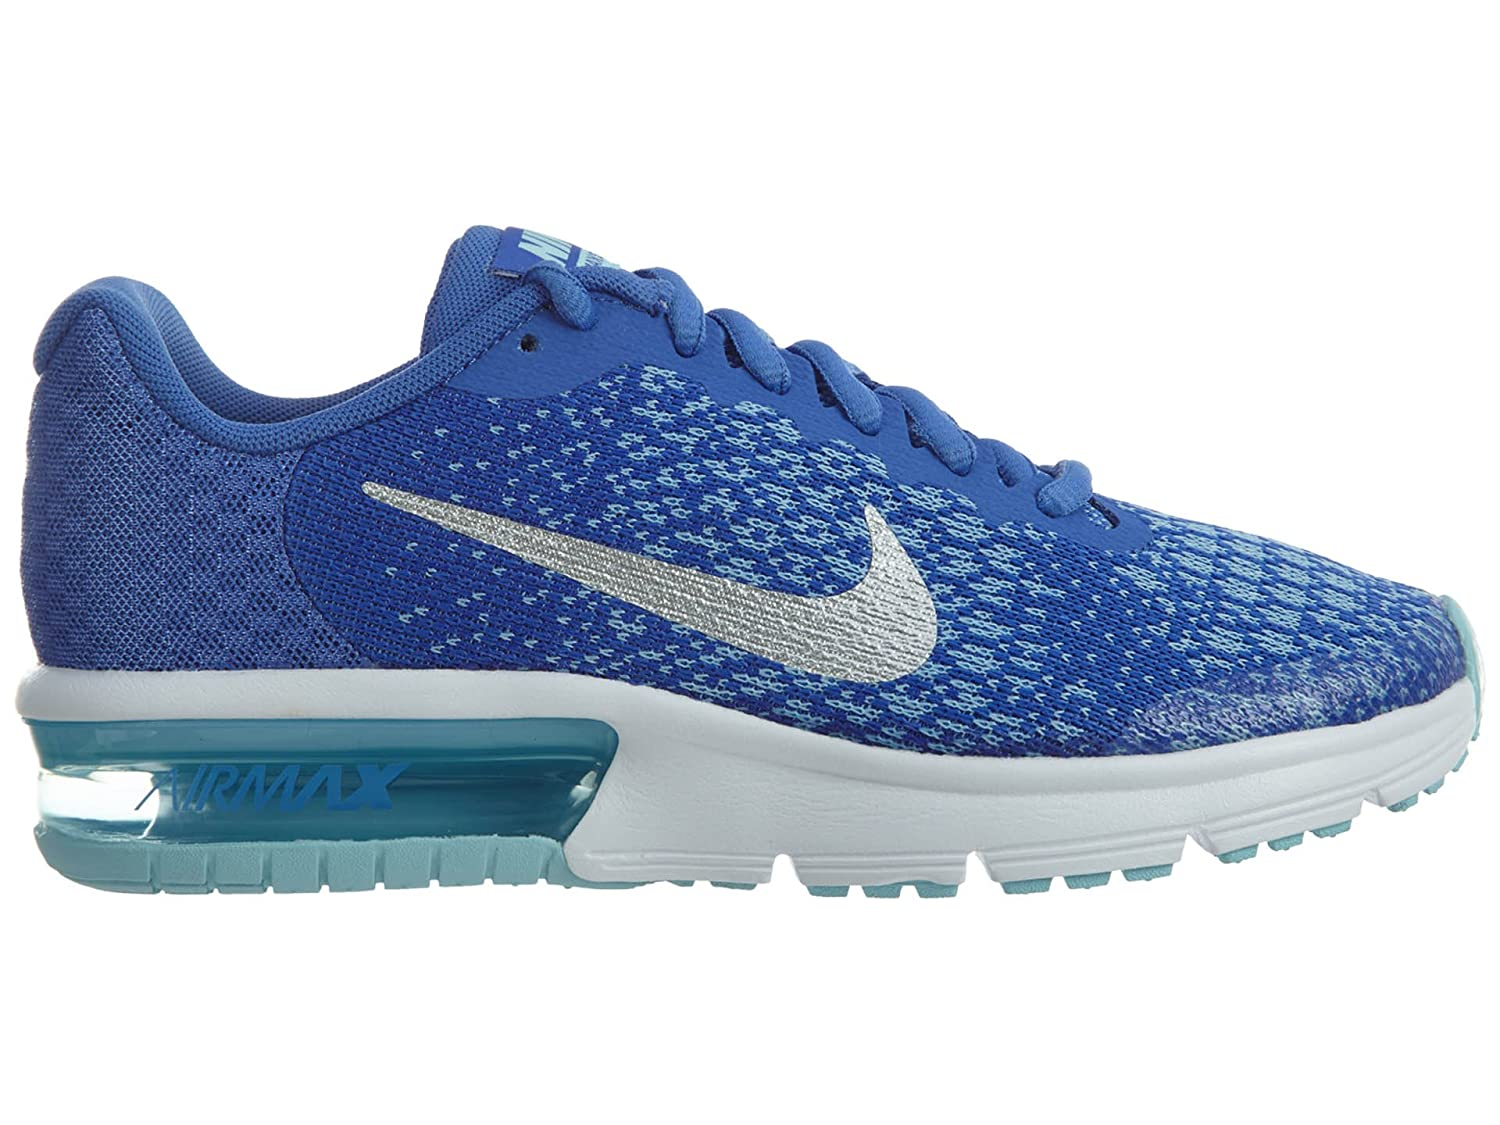 869994 NIKE Air Max Sequent 2 Big Kids Style